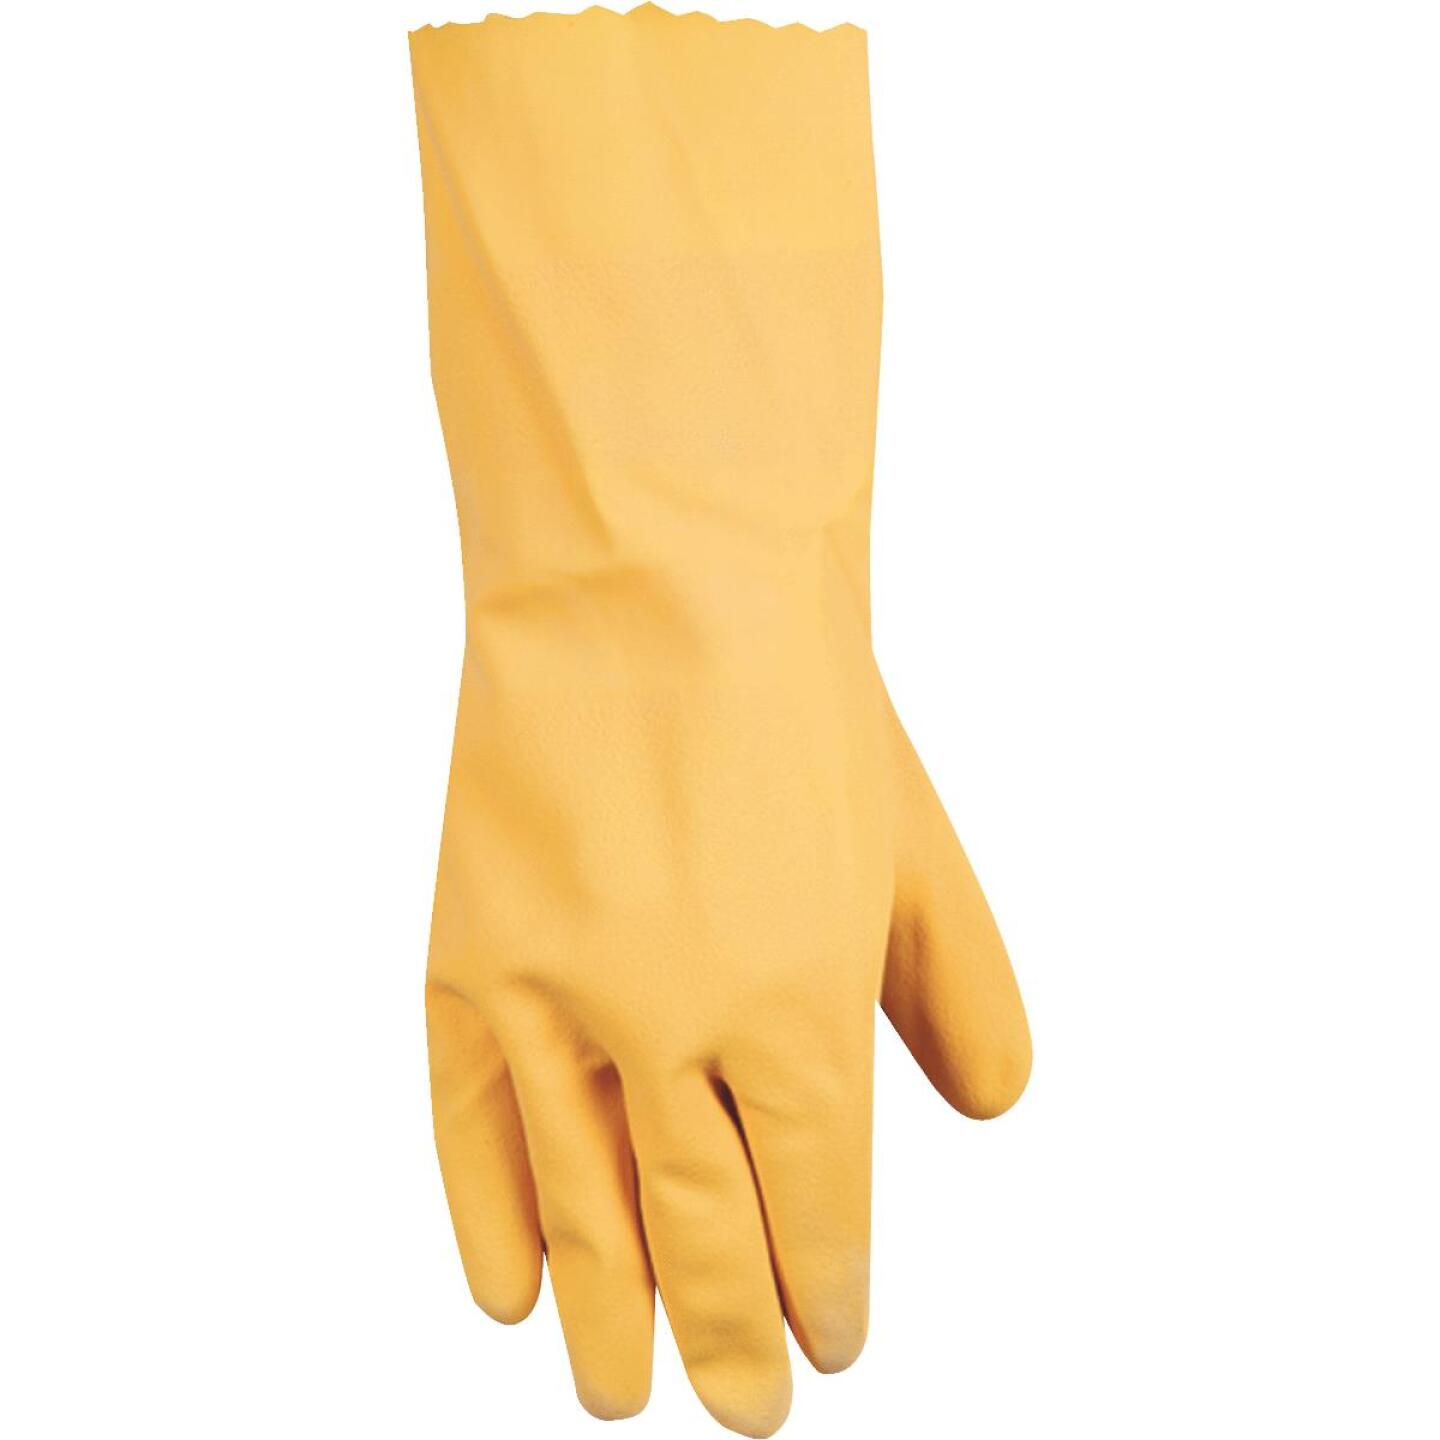 Wells Lamont Medium Latex Stripping Glove Image 2